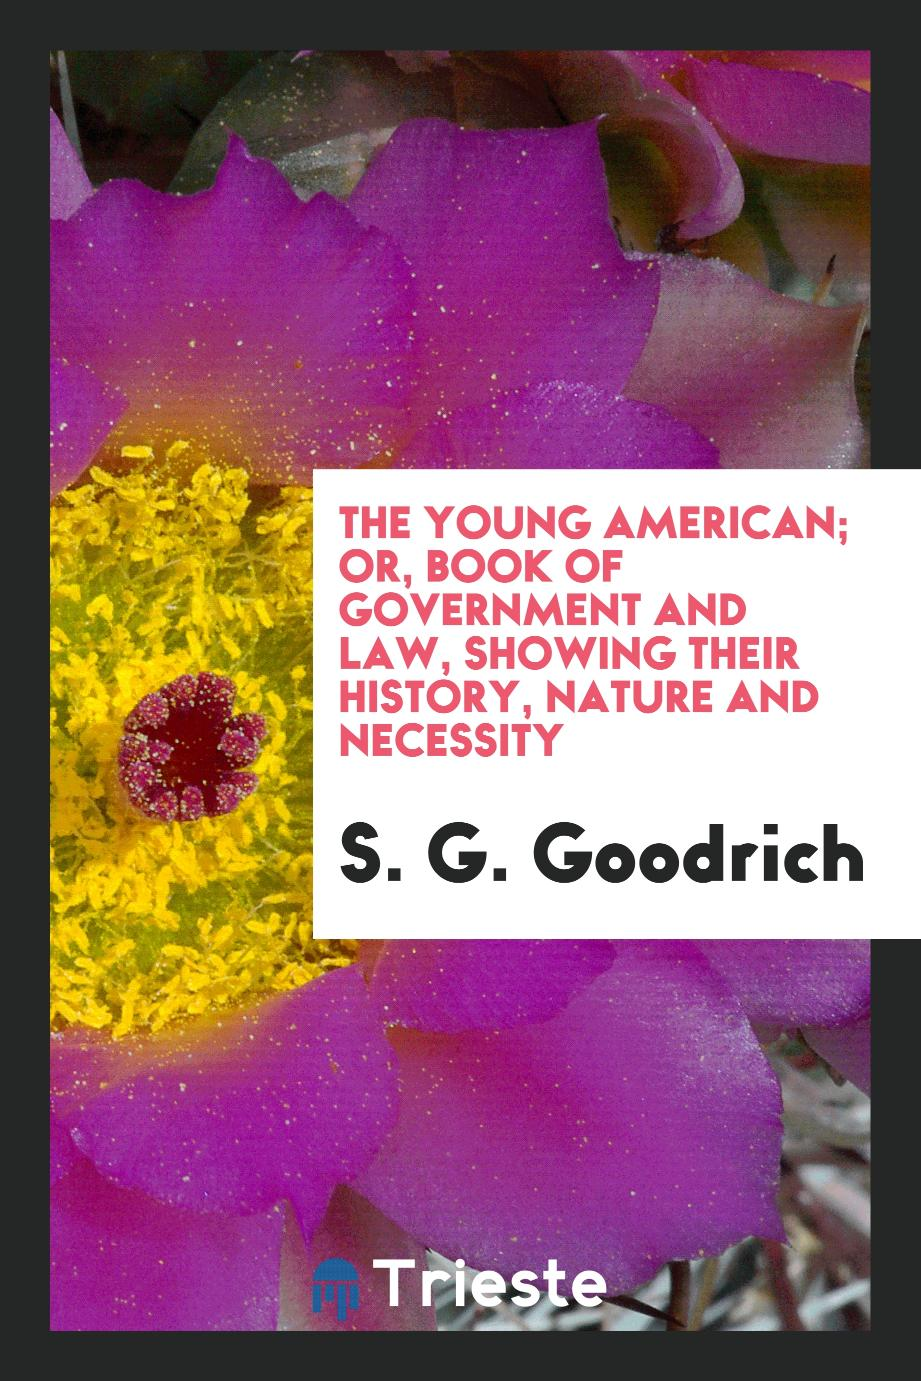 The young American; or, Book of government and law, showing their history, nature and necessity